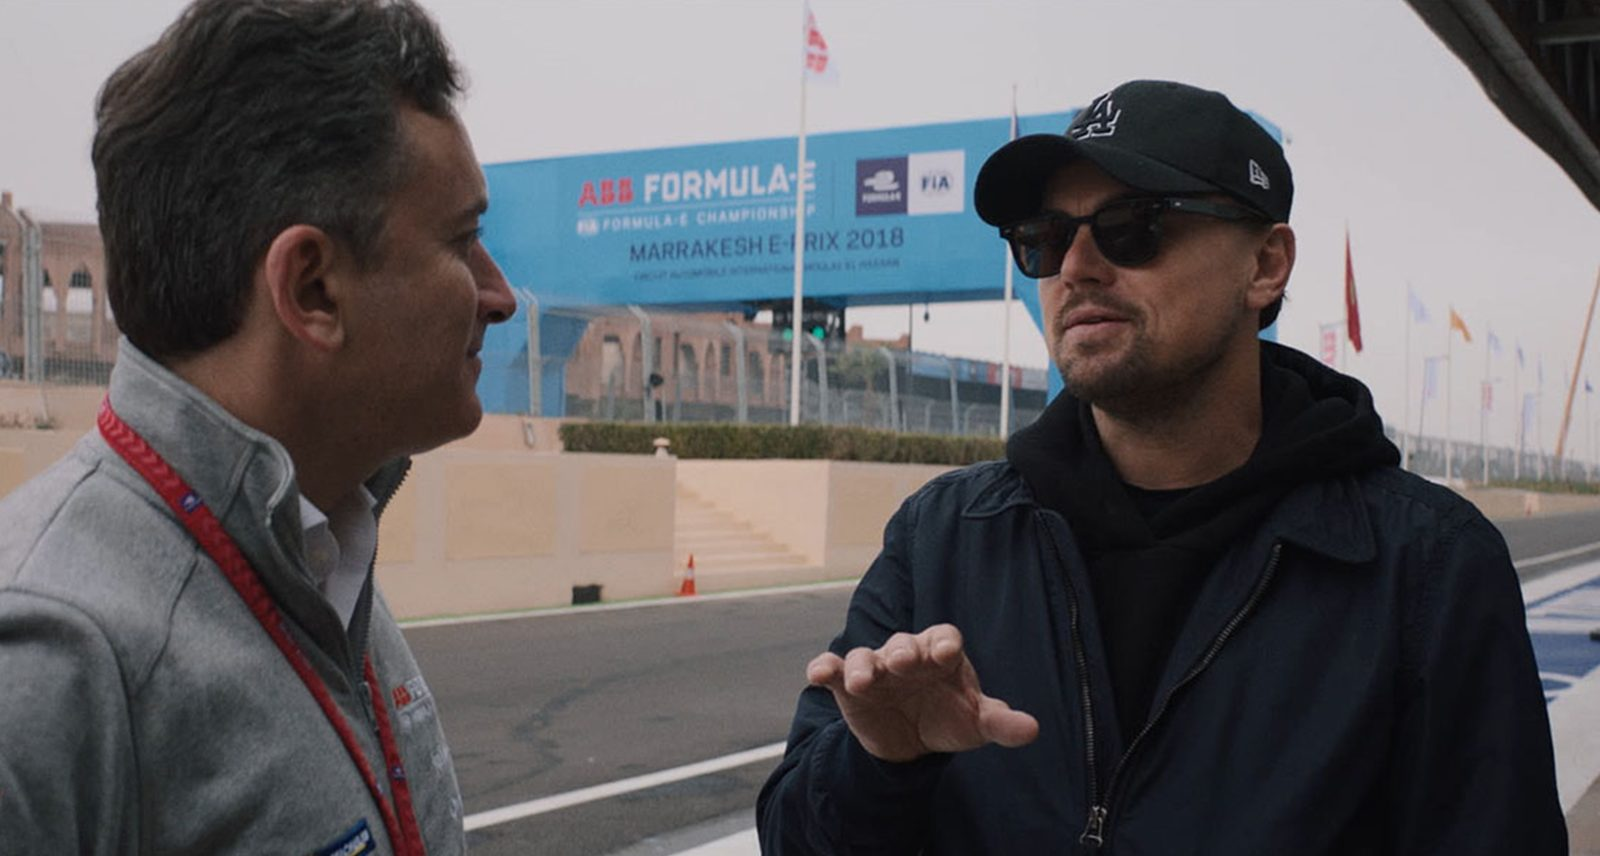 'And We Go Green' Directors Fisher Stevens and Malcolm Venville on Their New Formula E Doc and Their Message to Donald Trump